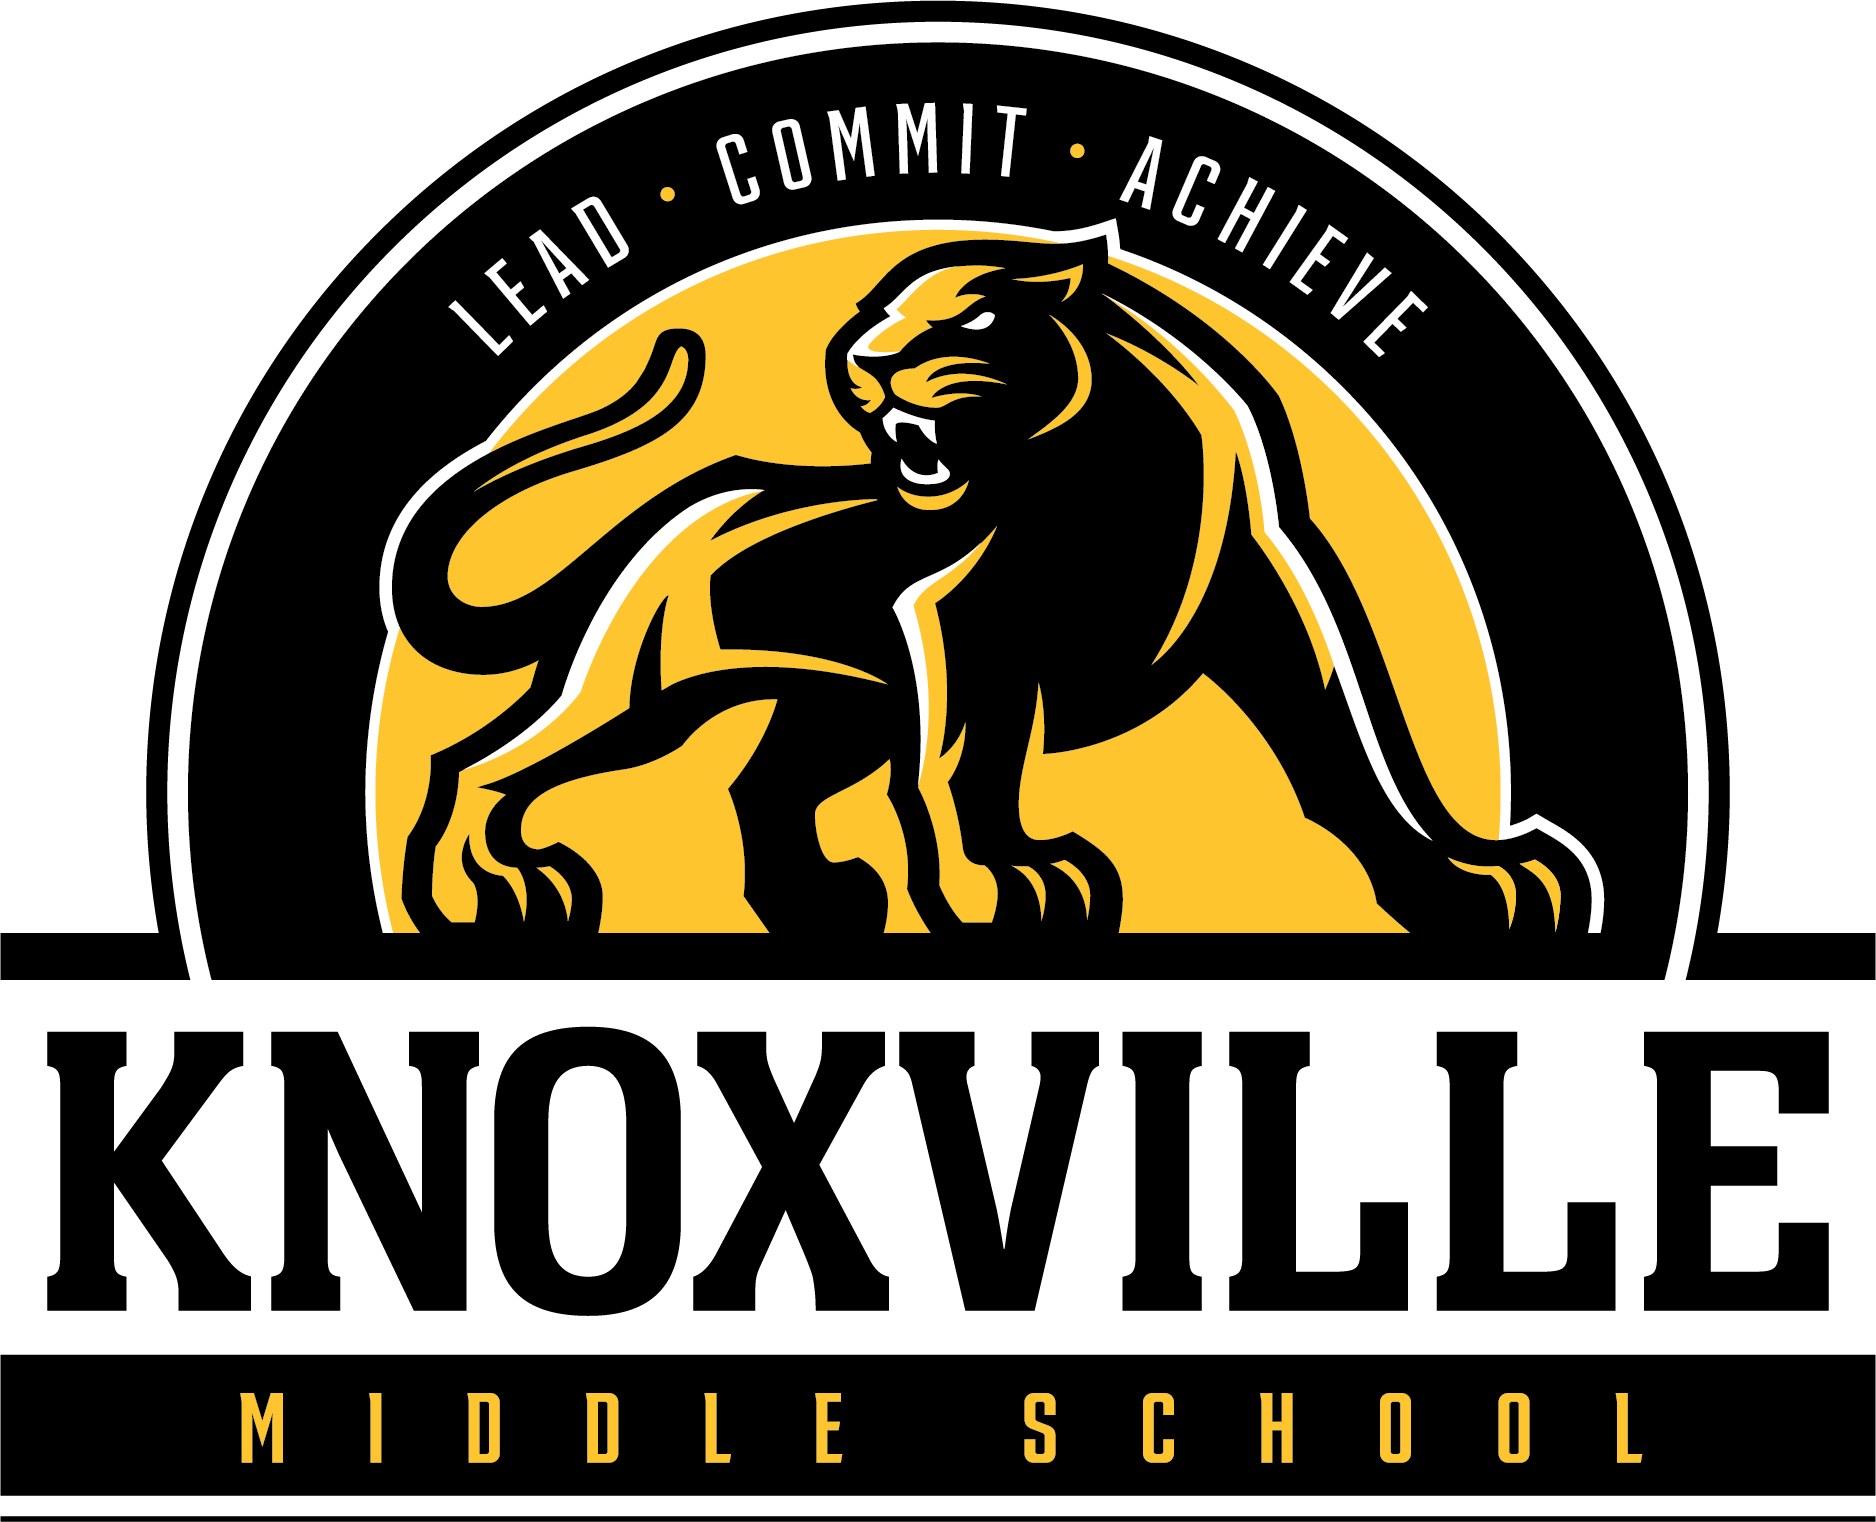 Knoxville MS: Lead-Commit-Achieve